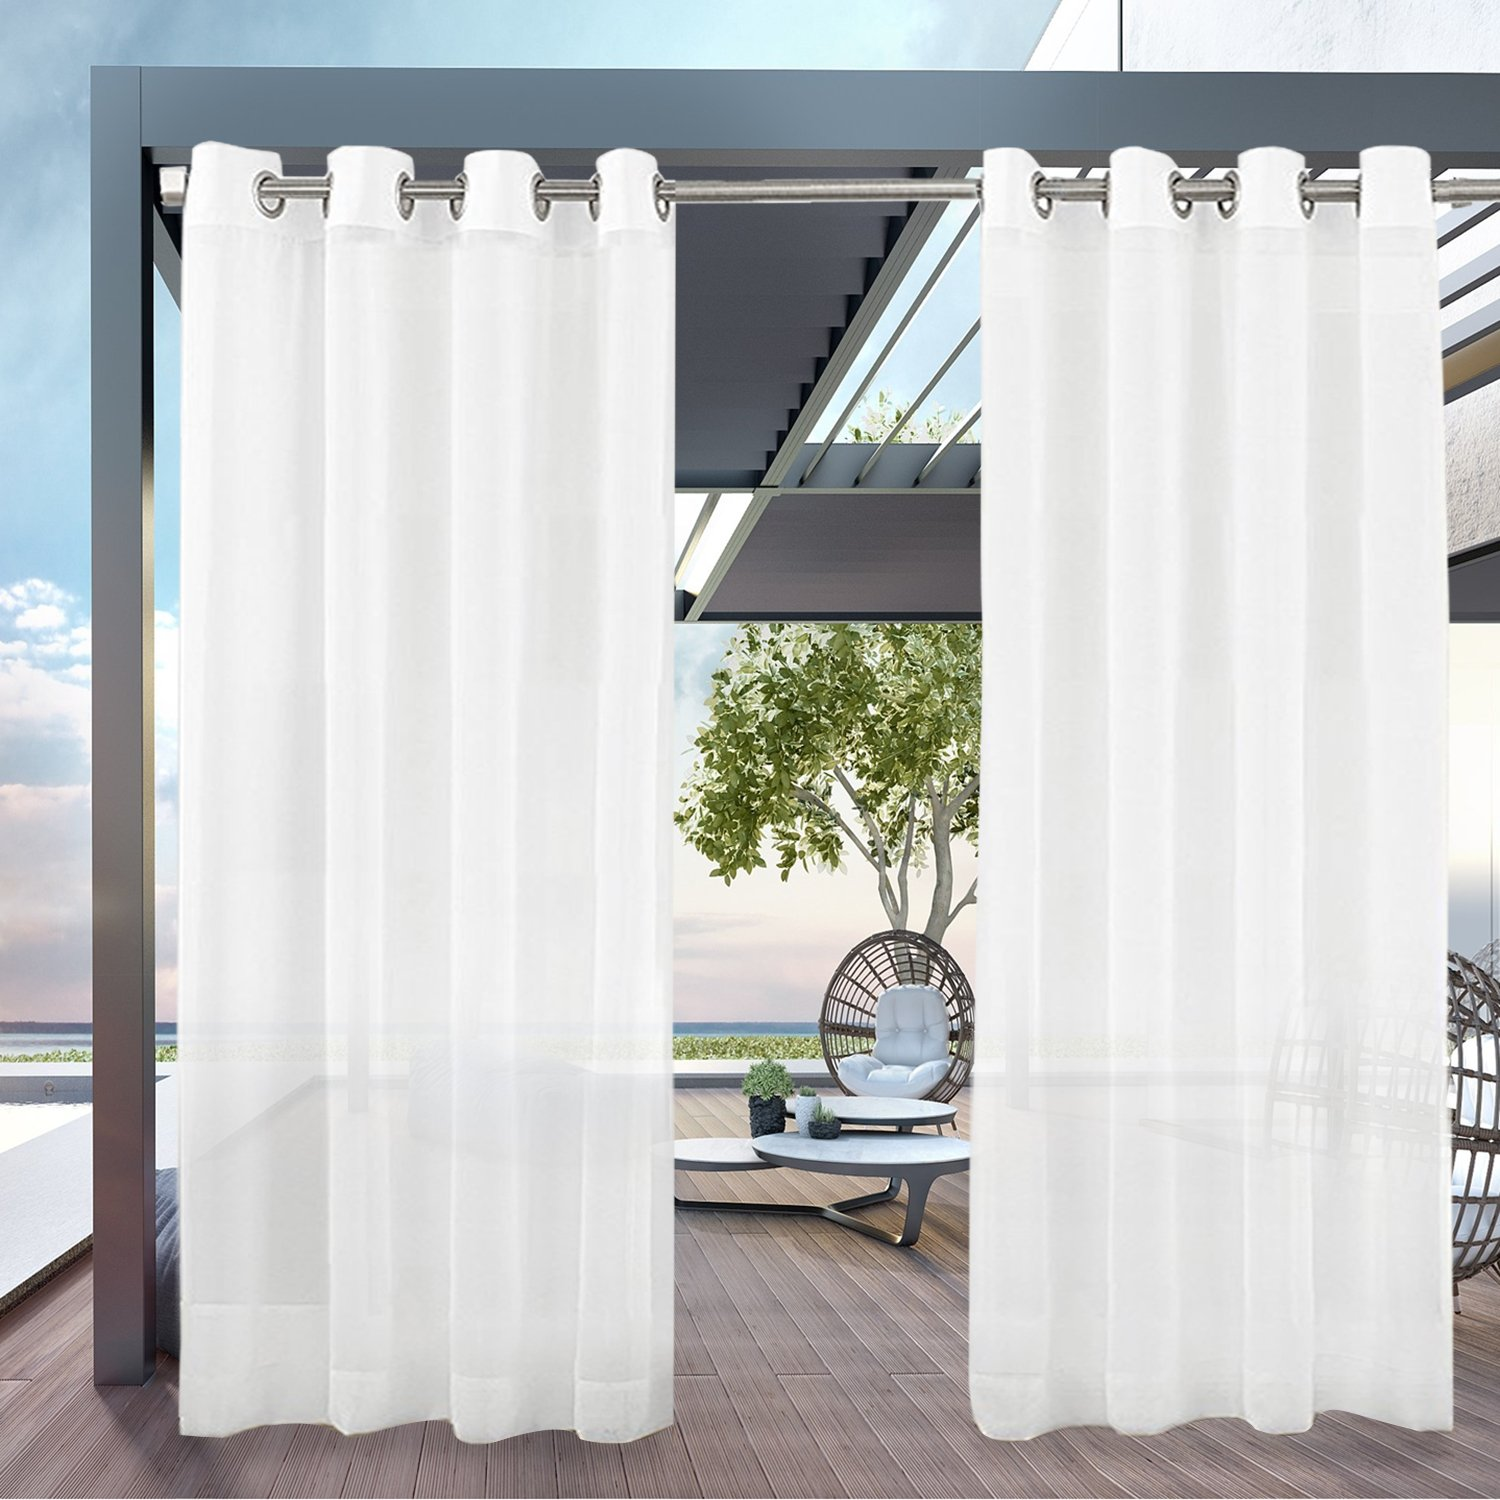 PRAVIVE Outdoor Sheer Curtain Panels - Elegant Water Repellent Grommet Indoor/Outdoor Drapes/Pergola Shades/Gazebo Blinds for Patio Privacy, 54'' W X 96'' L, White, Set of 1